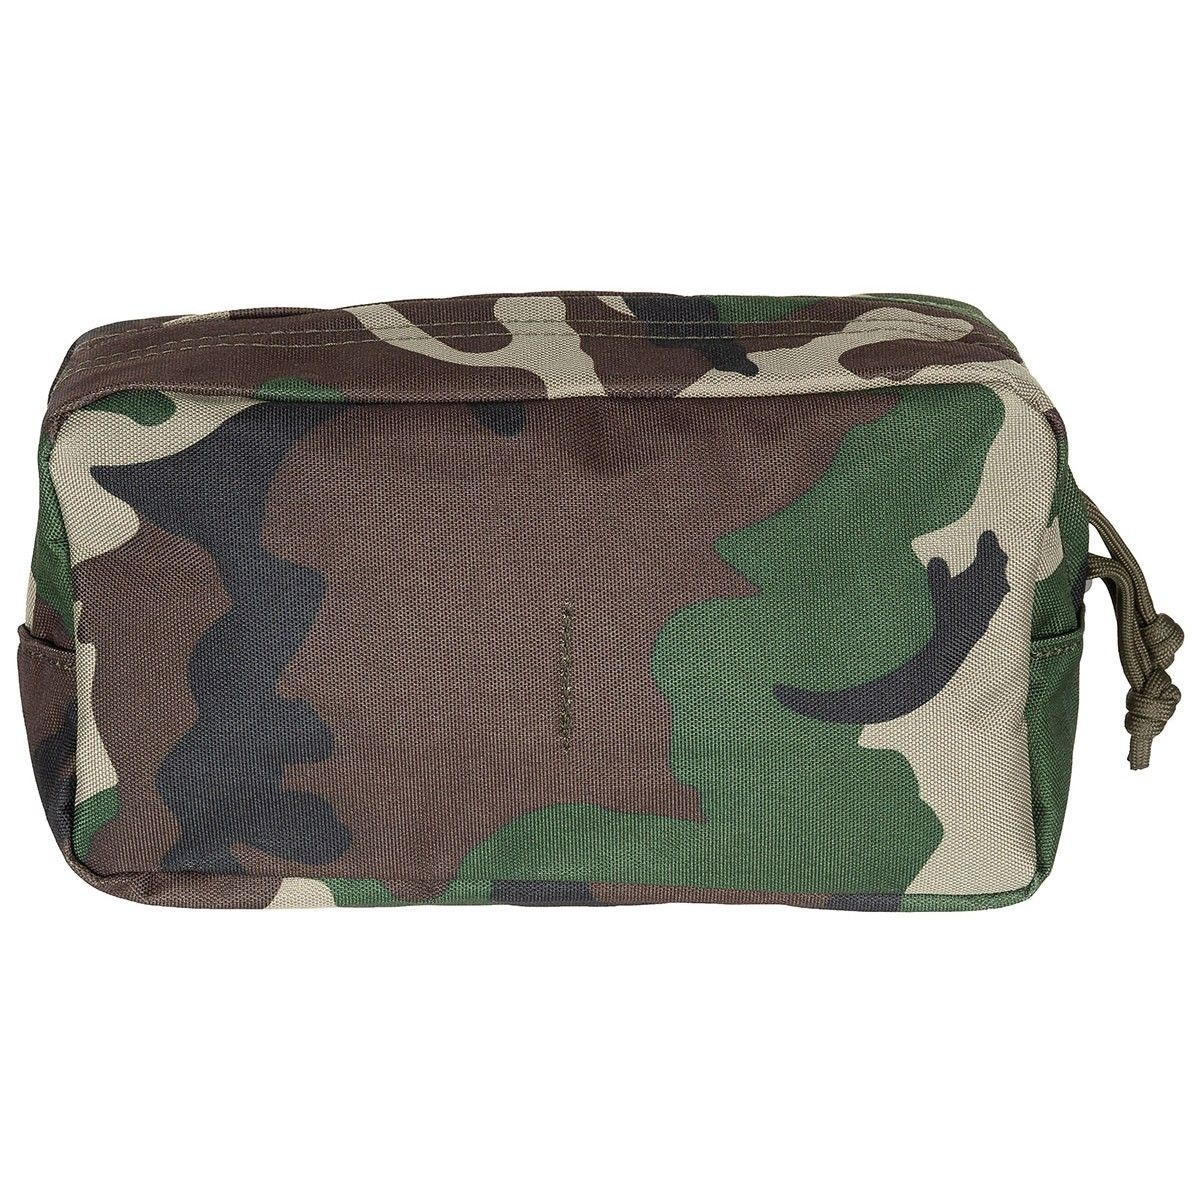 Mfh Large Utility Pouch Woodland Camo